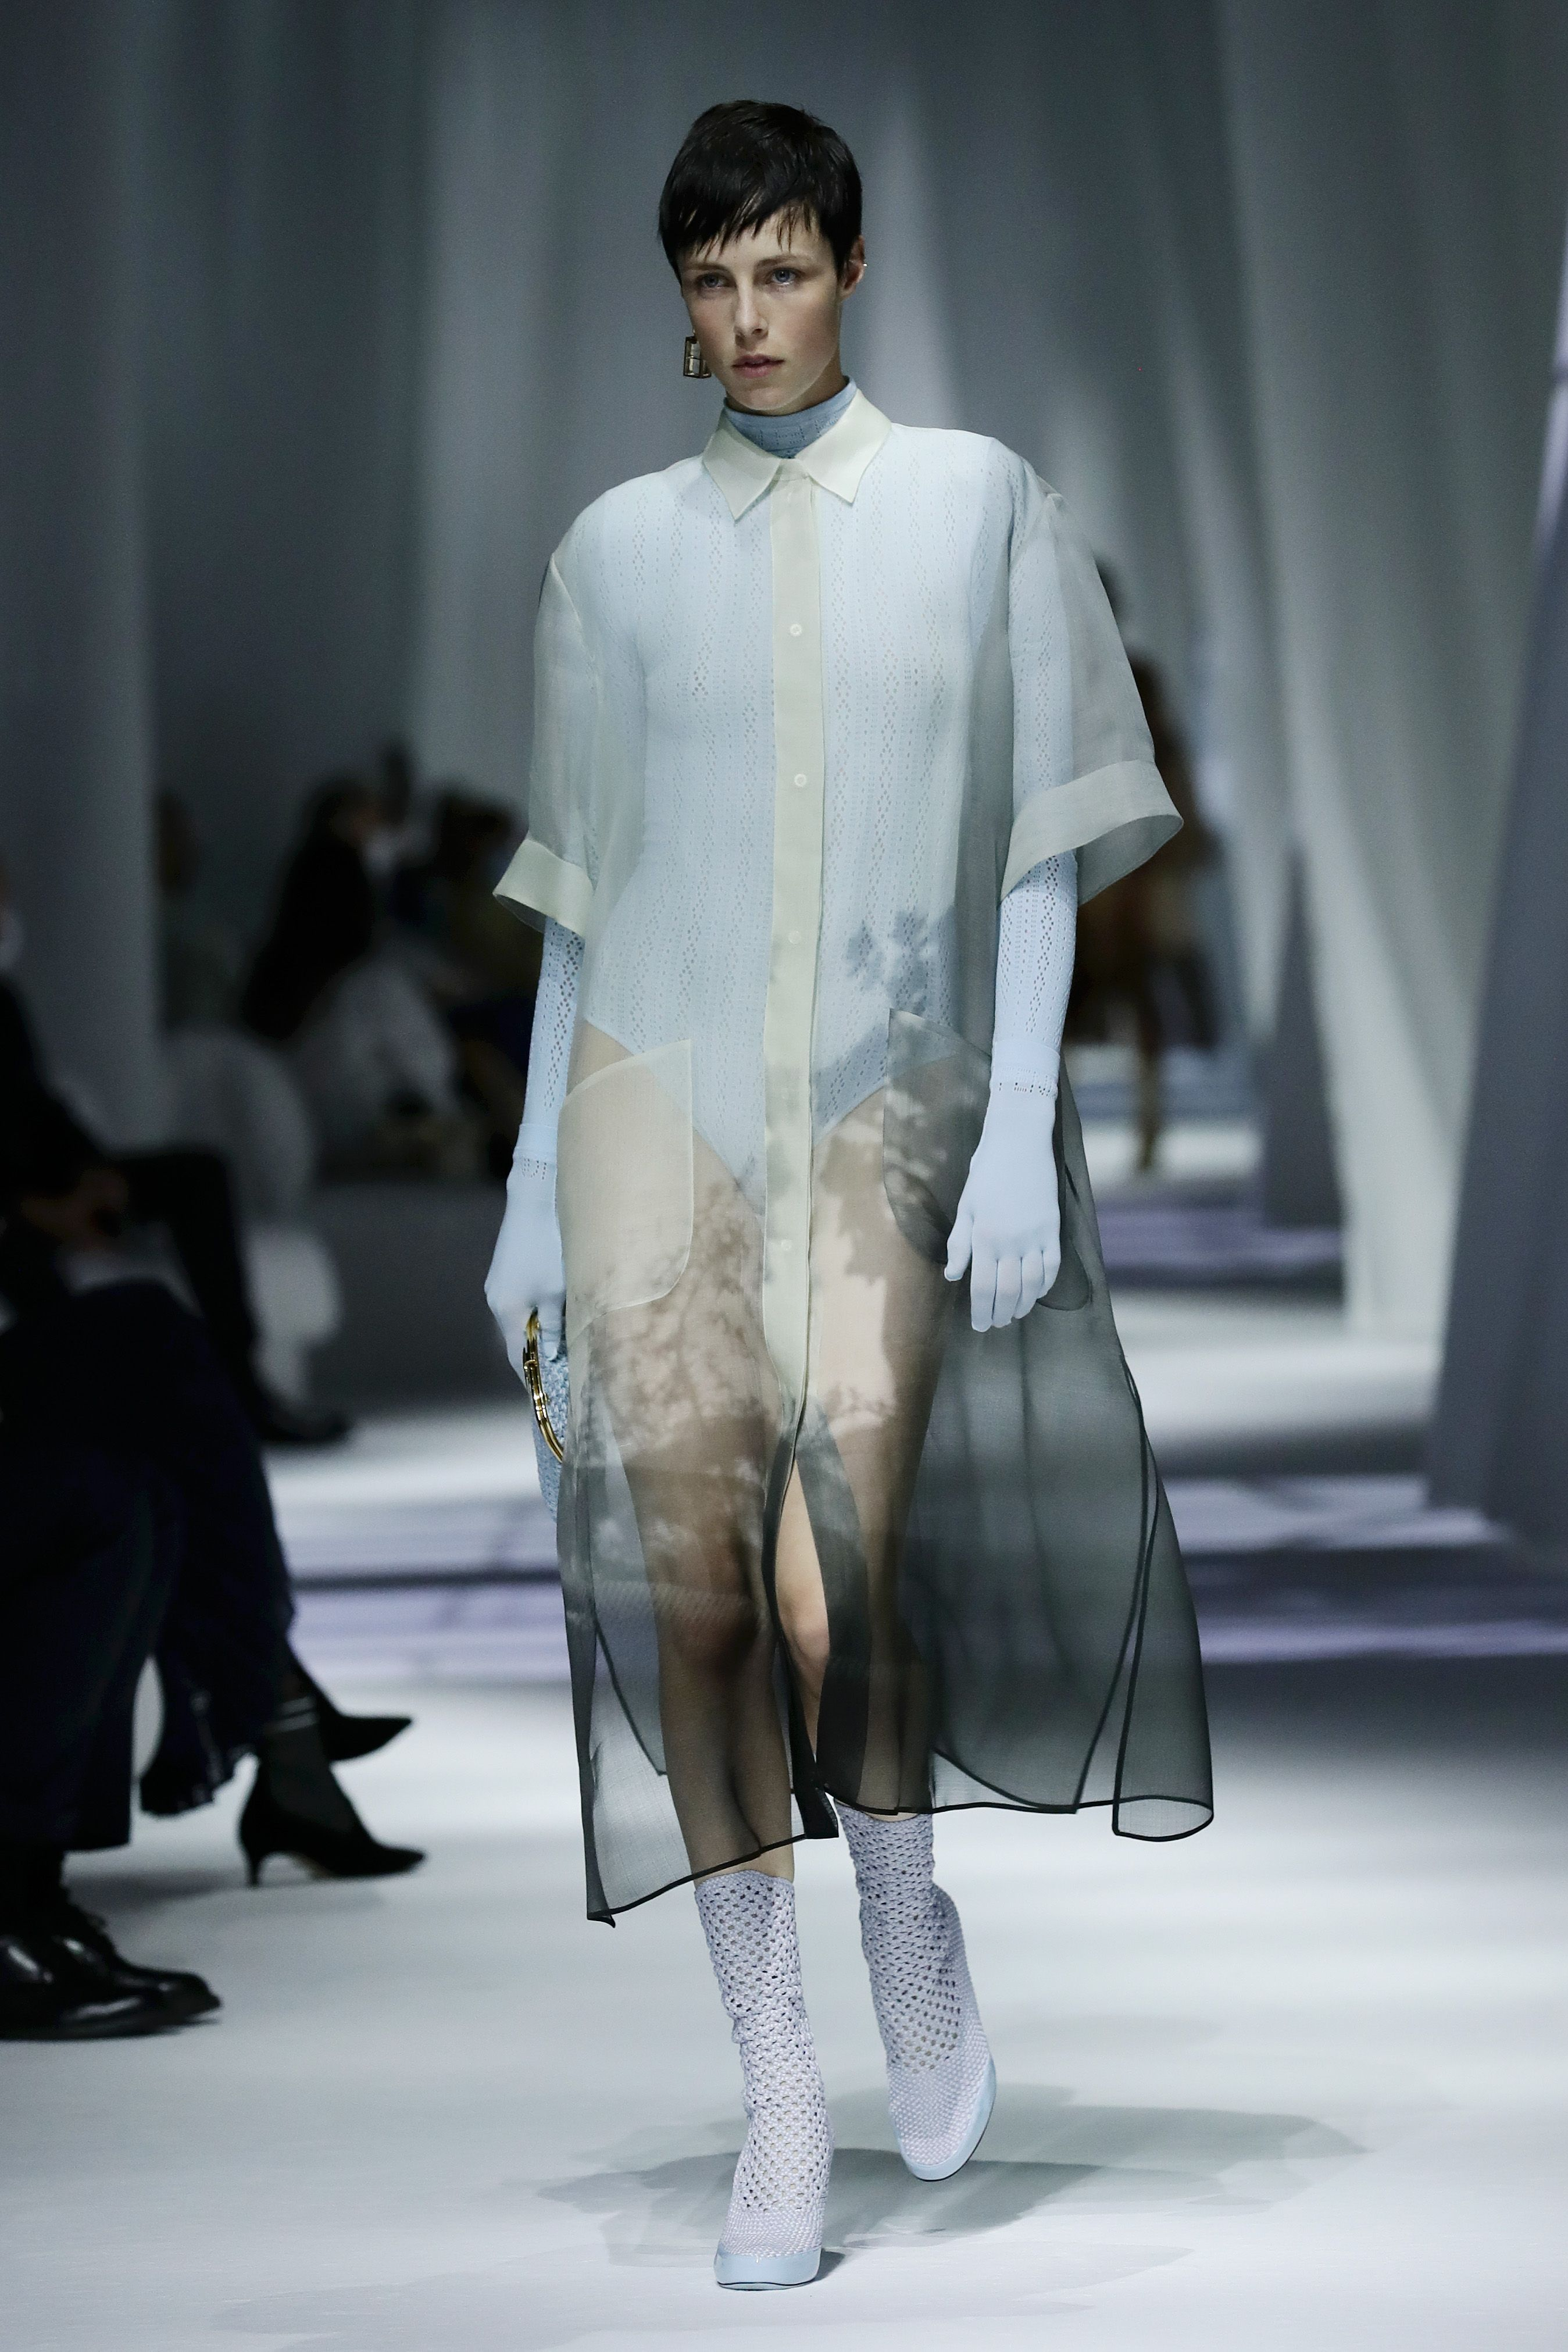 Fendi S/S 8 – Every Look From Fendi Spring/Summer 8